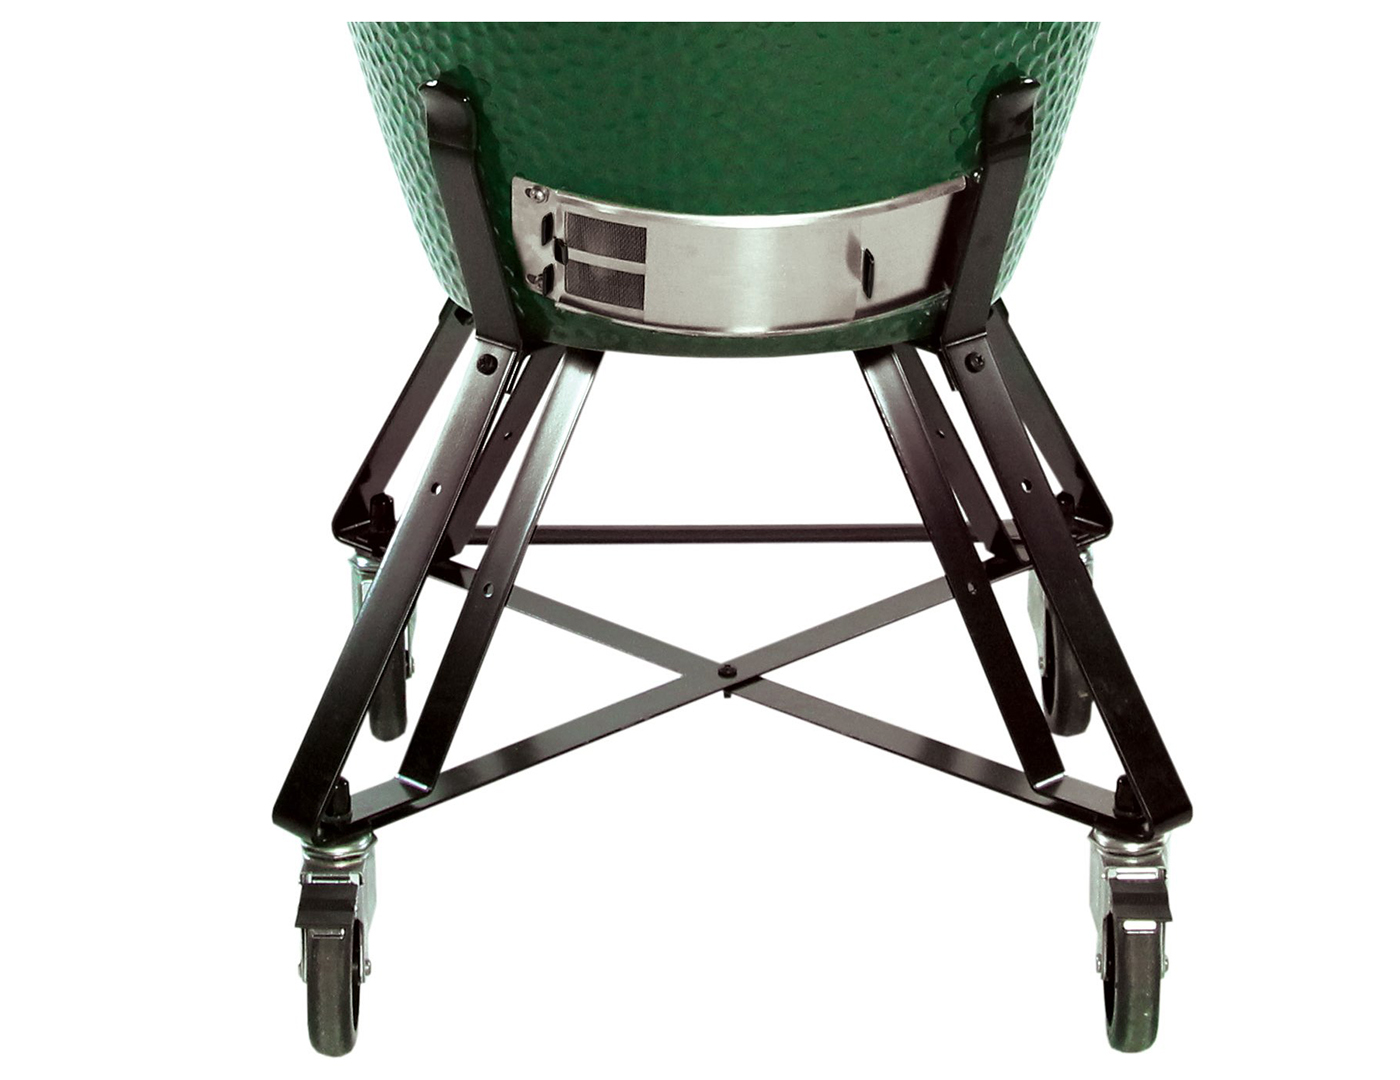 Big Green Egg Nest with Casters for Large Egg